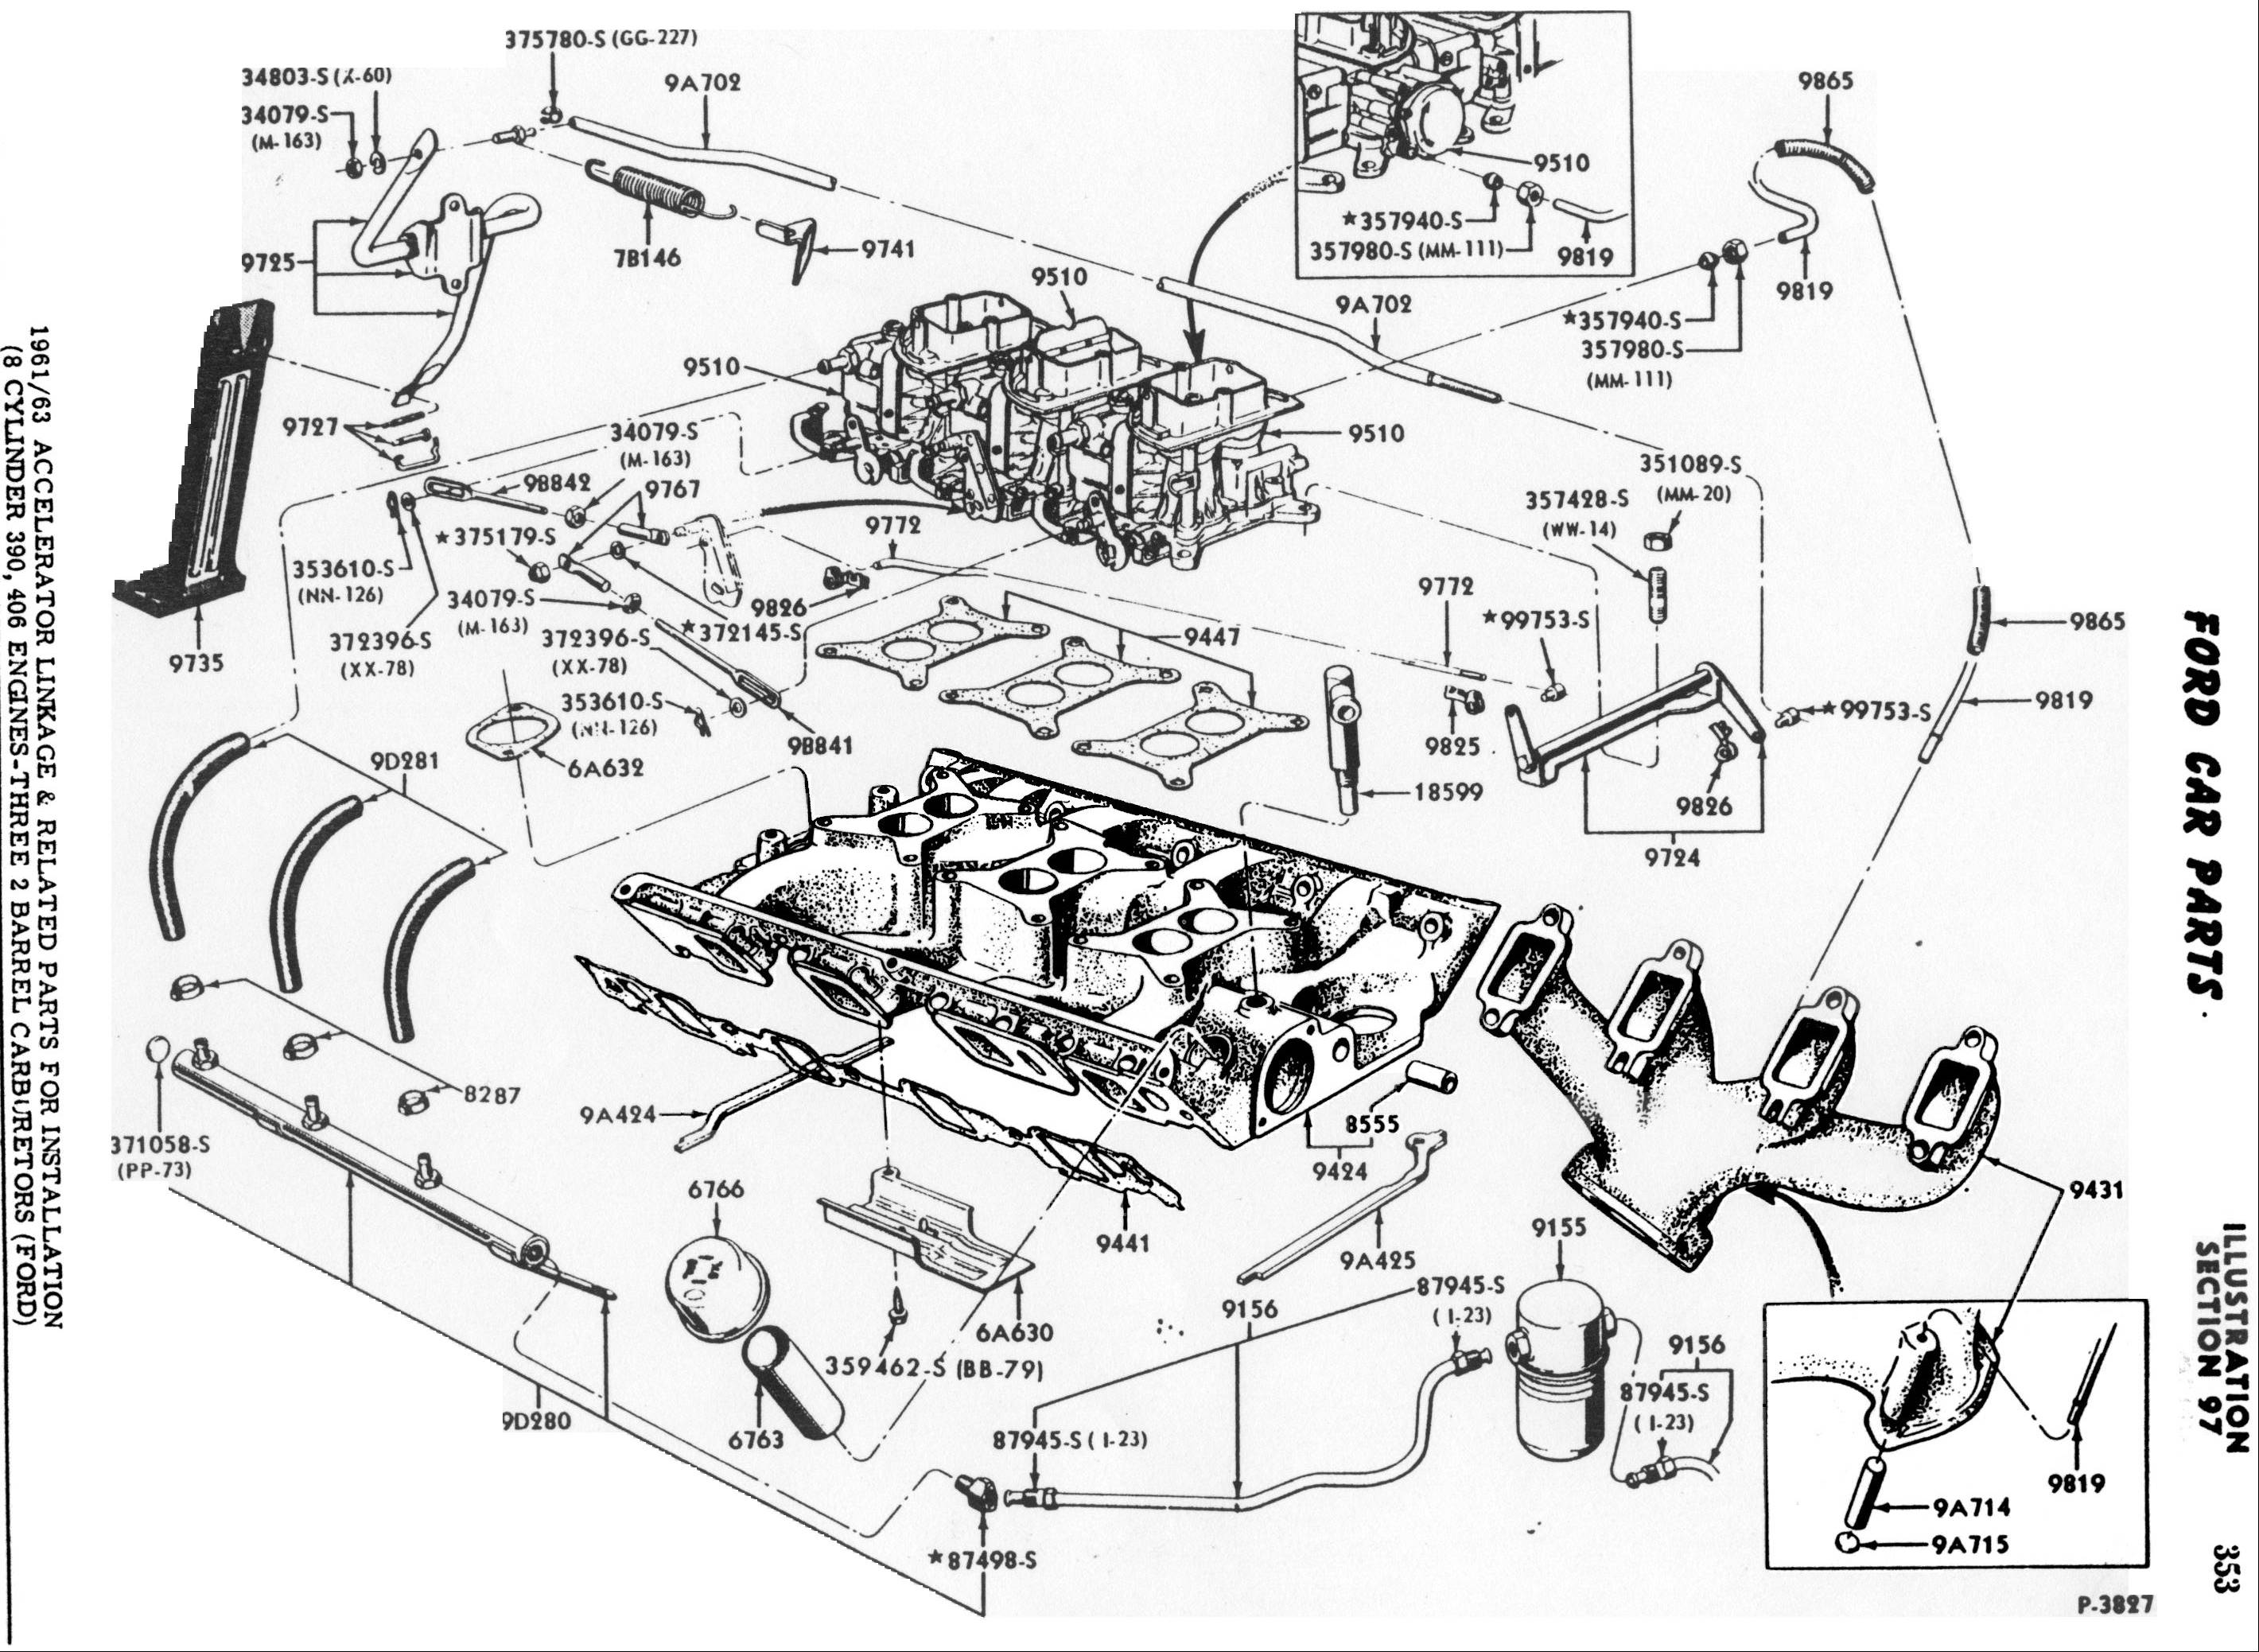 144707 Upgrading 300 Carb Straight Six Pics likewise 1152980 Vacuum Lines also 2409 Ford Bronco 58 key 8 together with Watch together with Camaro Wiper Switch Location. on ford 351w vacuum diagram